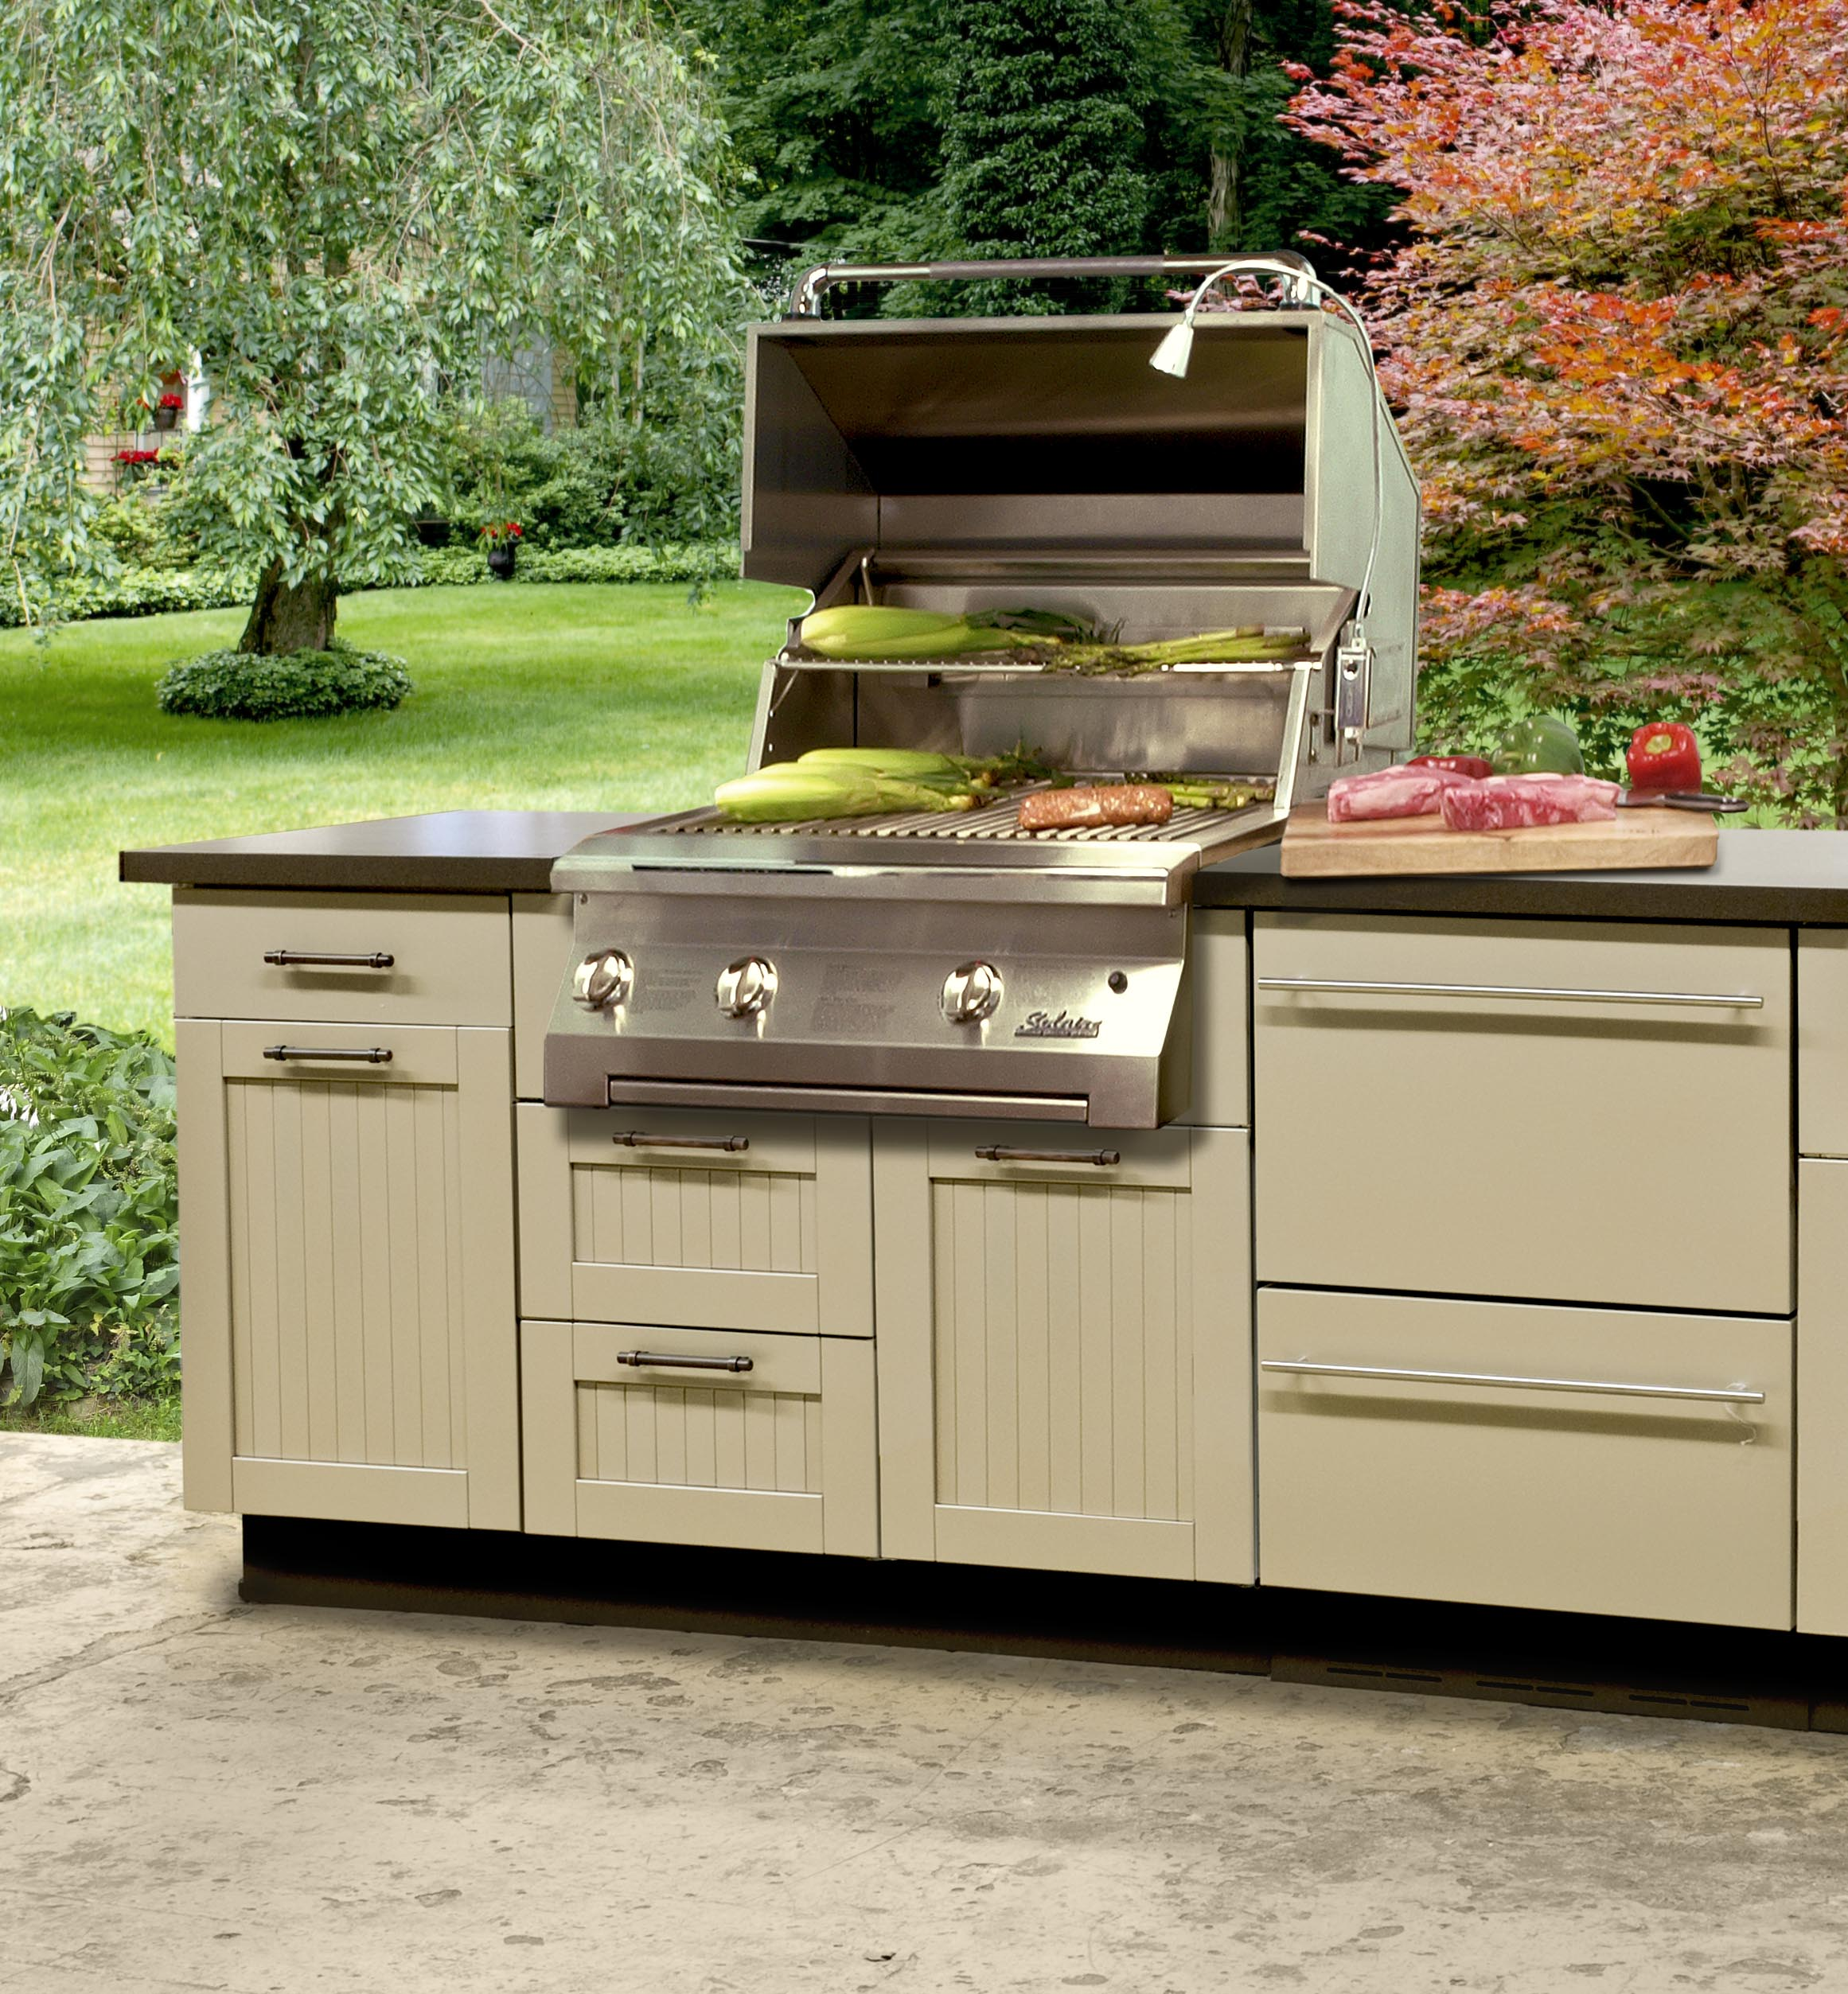 Danver stainless steel cabinetry kbtribechat for Outdoor grill cabinet design